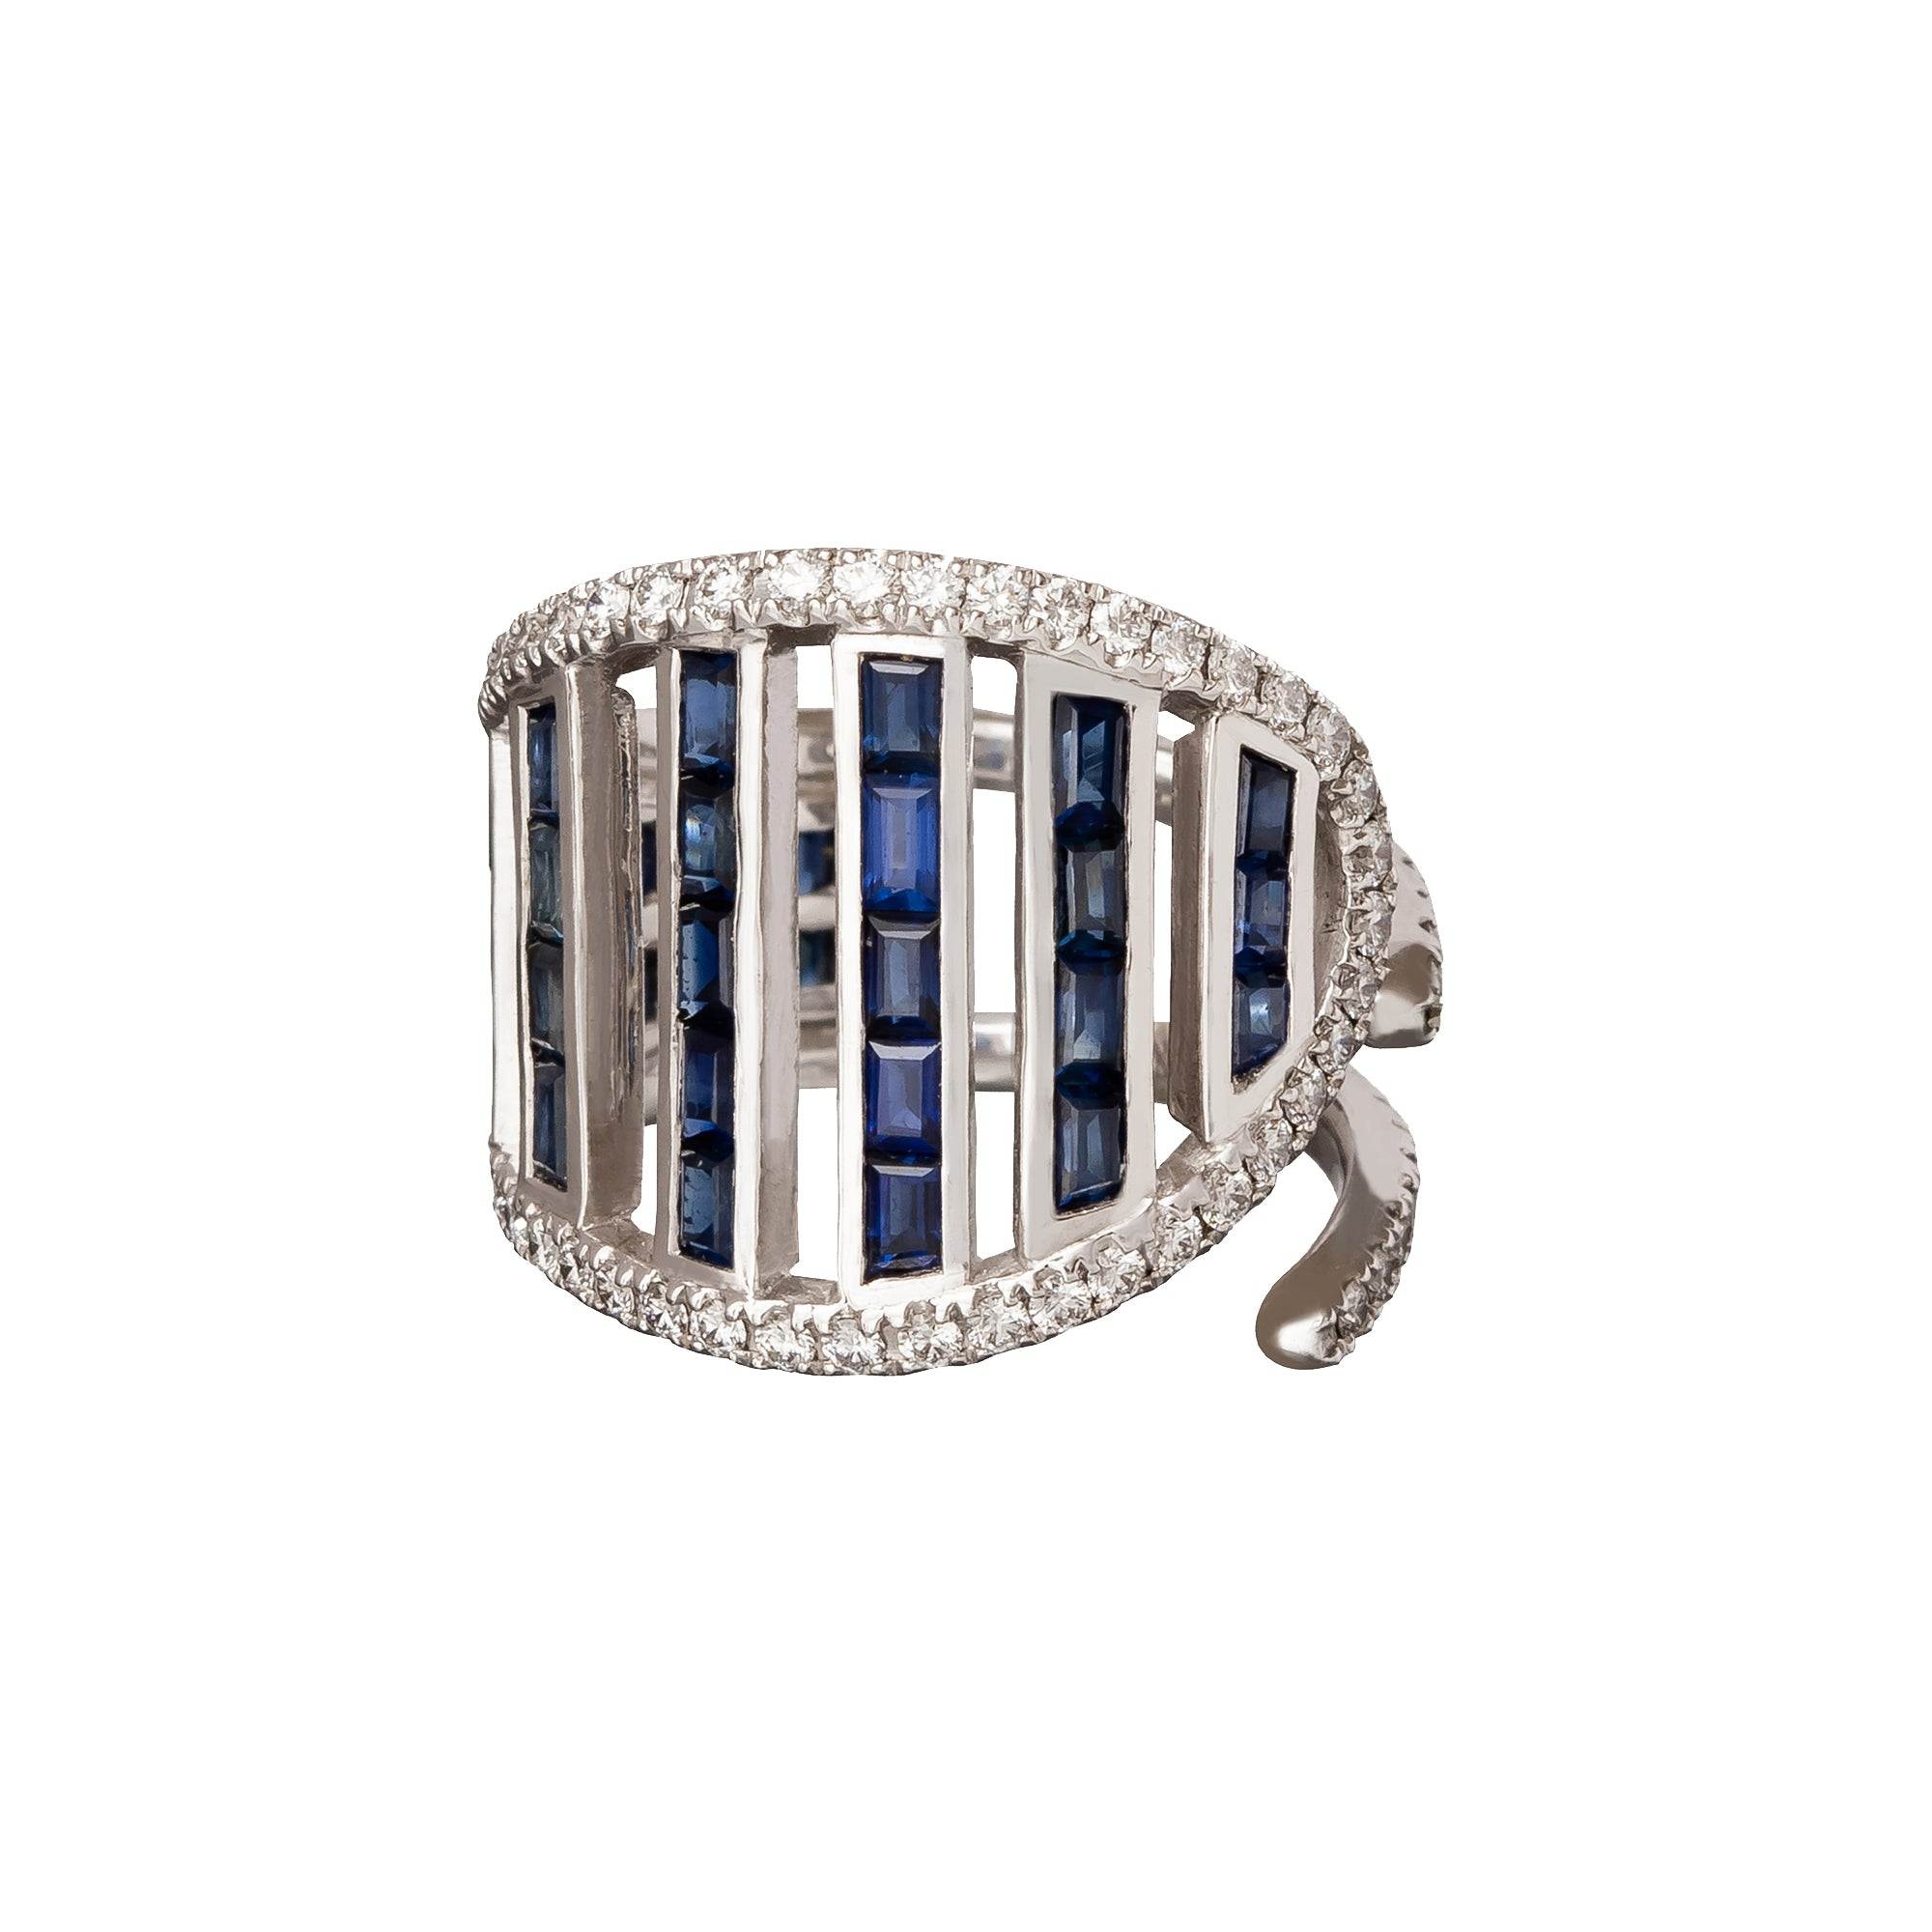 Blue Sapphire and Diamond Ring - Kavant & Sharart  - Rings | Broken English Jewelry